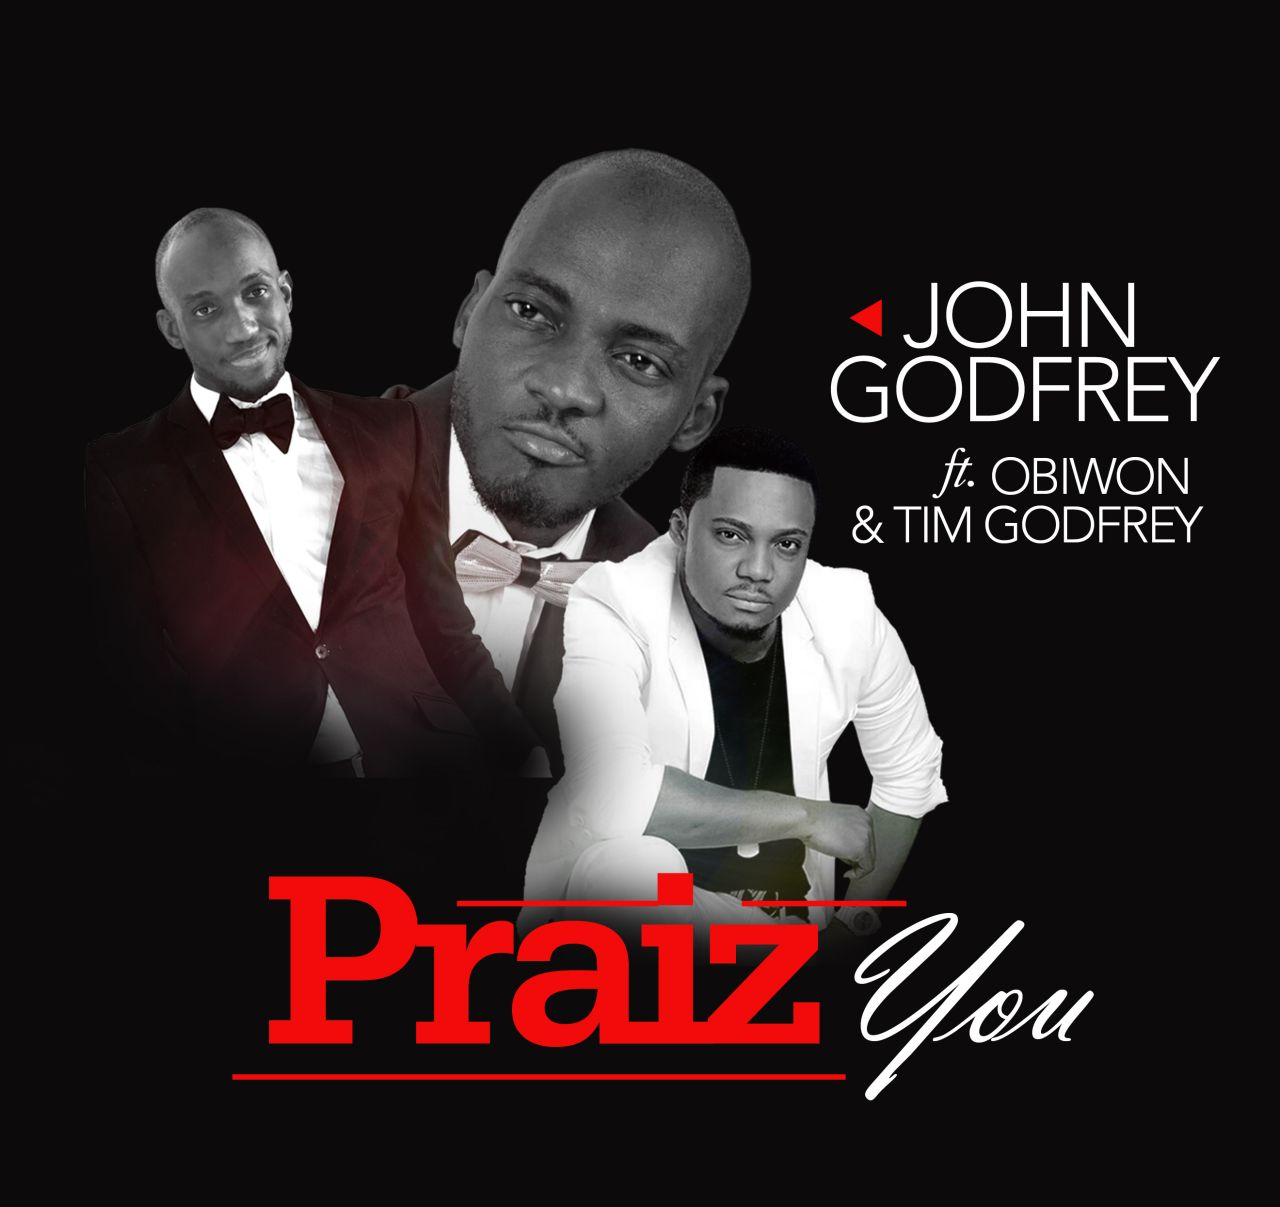 PRAIZ YOU - John Godfrey [@johngodfrey42] ft Obiwon [@ObioraObiwon] & Tim Godfrey